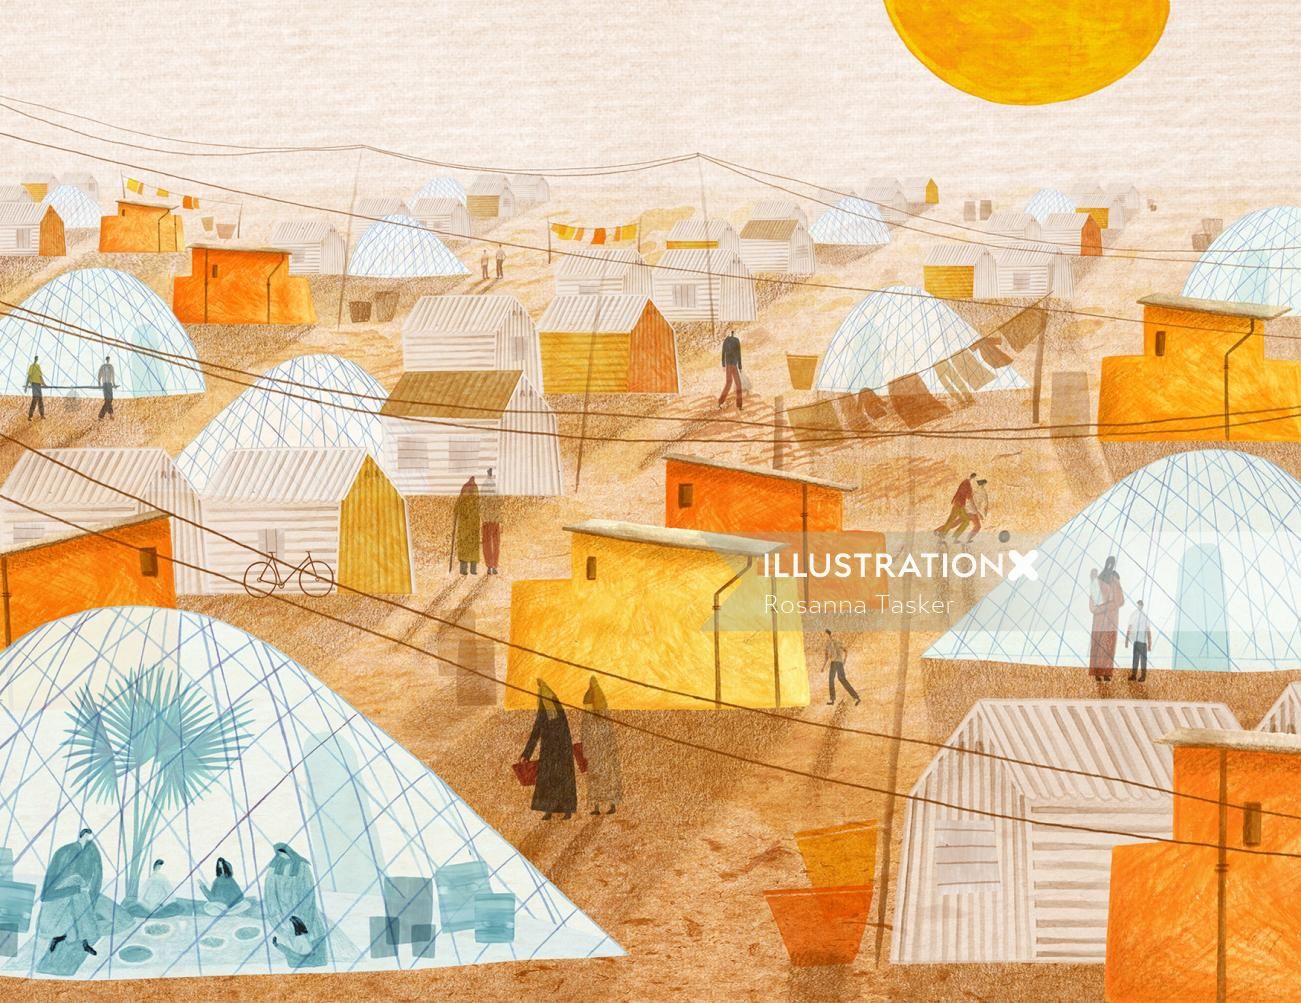 climate change, climate, global warming, refugee, refugees, refugee shelter, refugee camp, science,